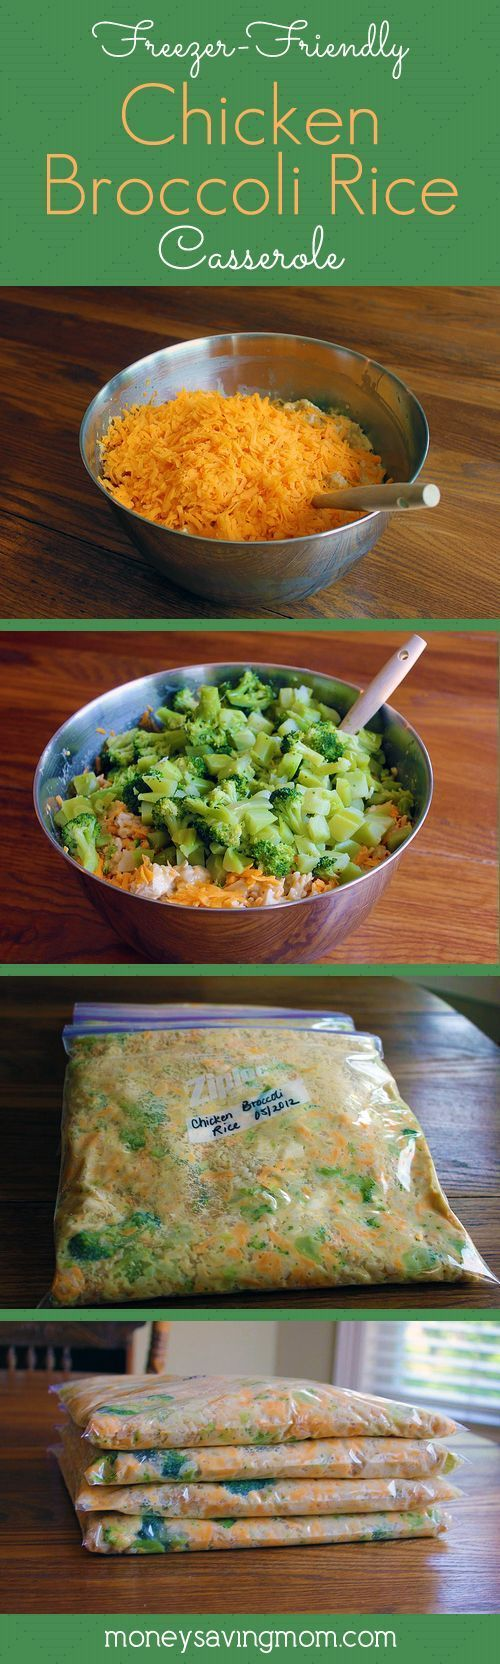 Freezer Friendly Chicken Broccoli Rice Casserole -- this recipe is hands down one of our very favorite. It's easy to whip up, it's frugal, and it freezes well! #easymeals